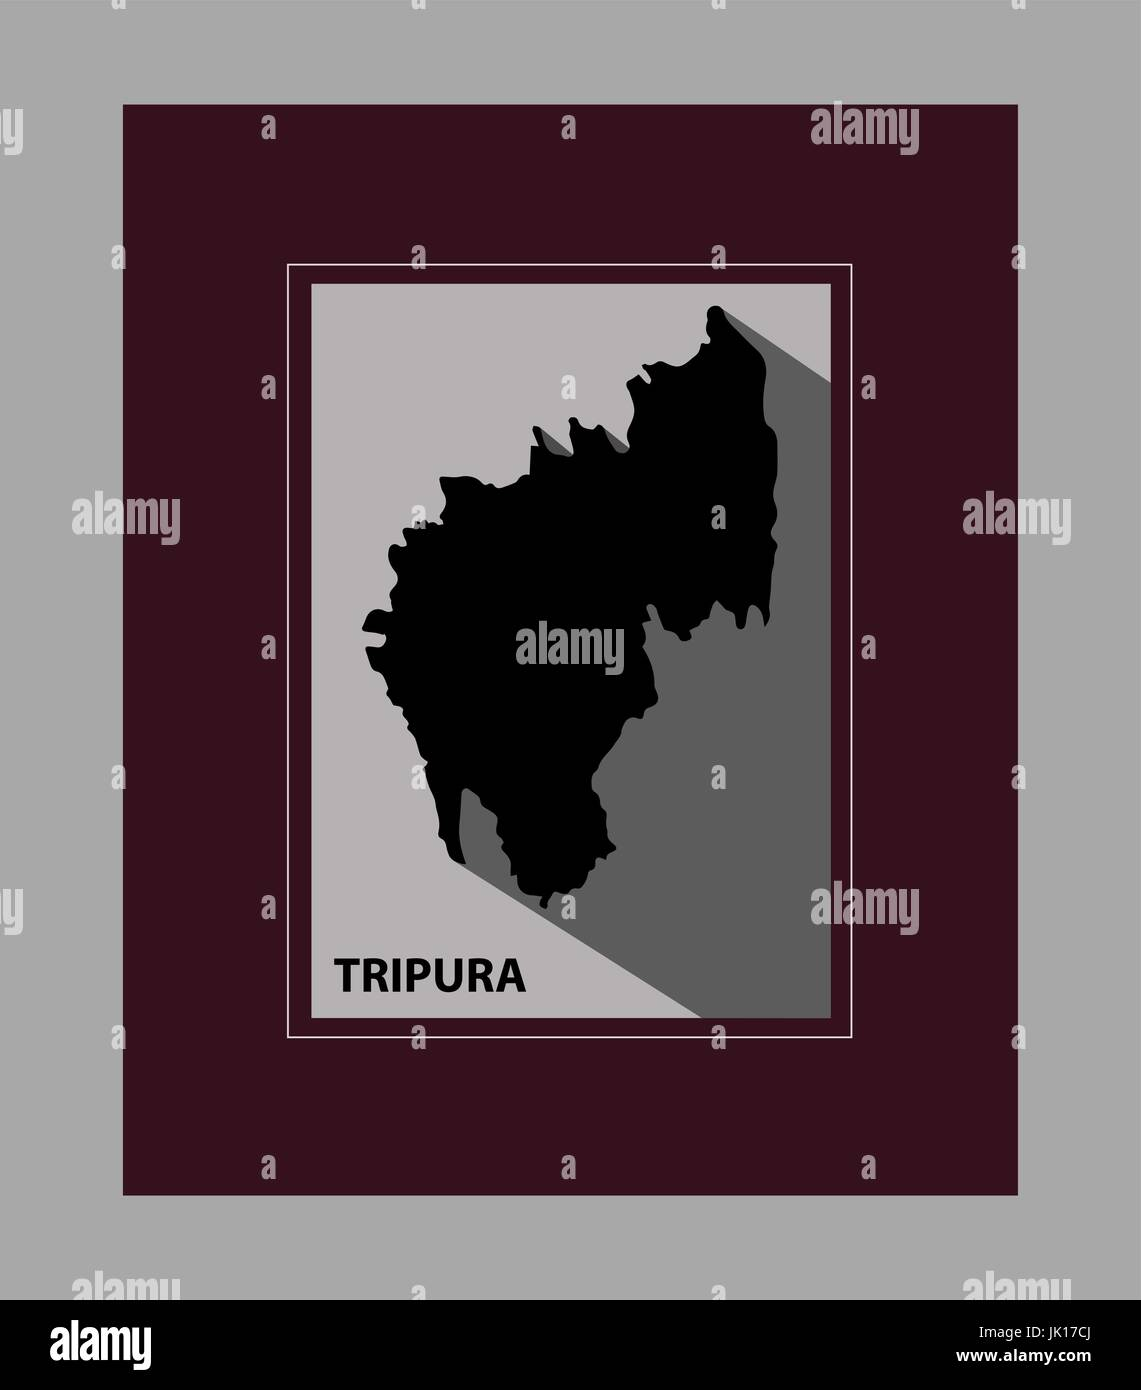 The State of Tripura - Stock Vector